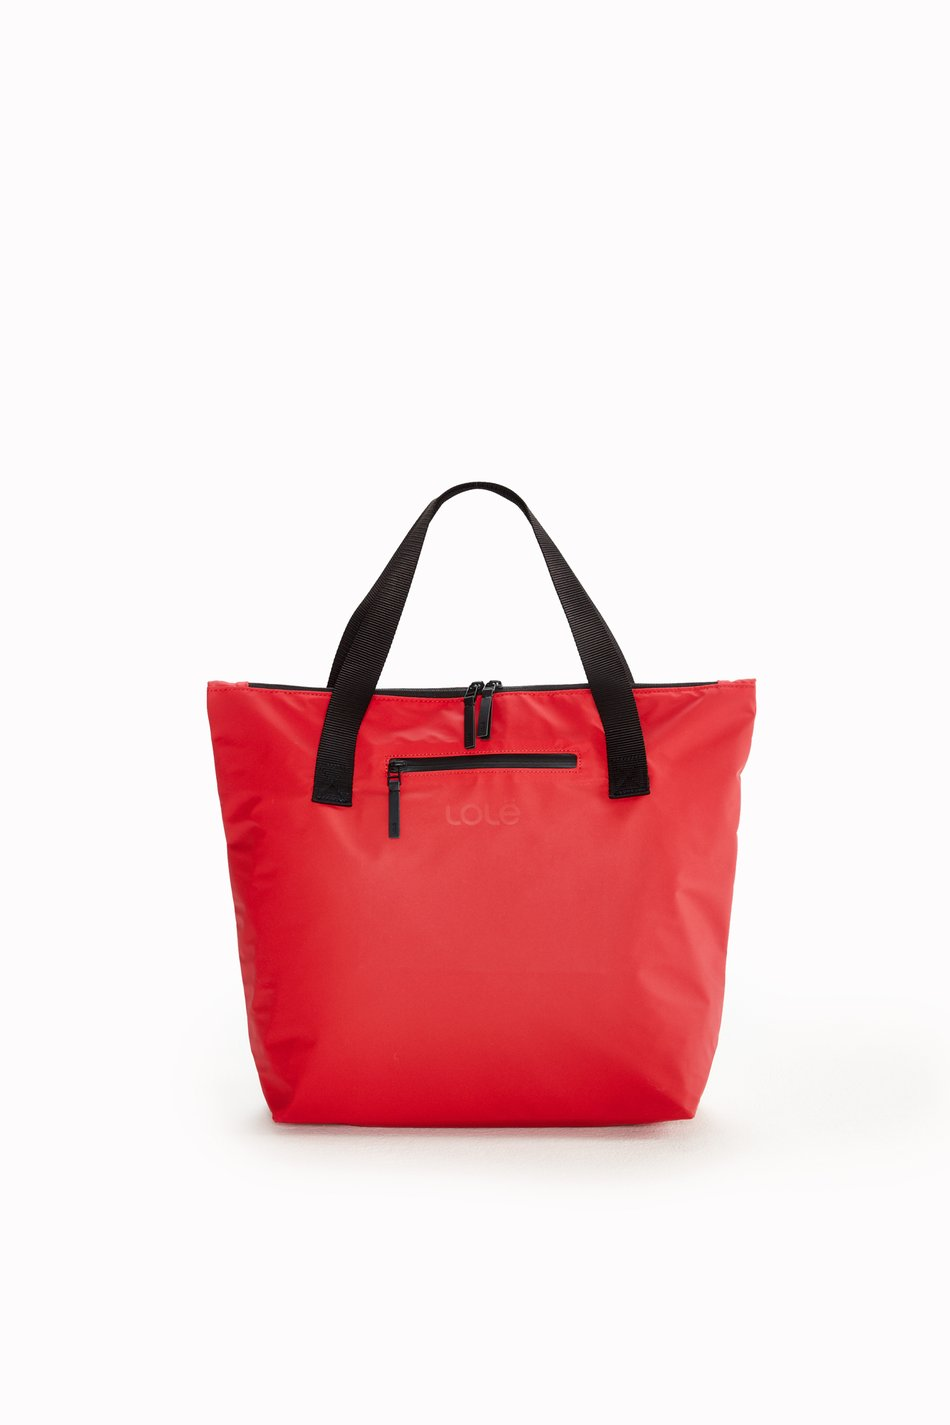 Lole Lily Packable Bag